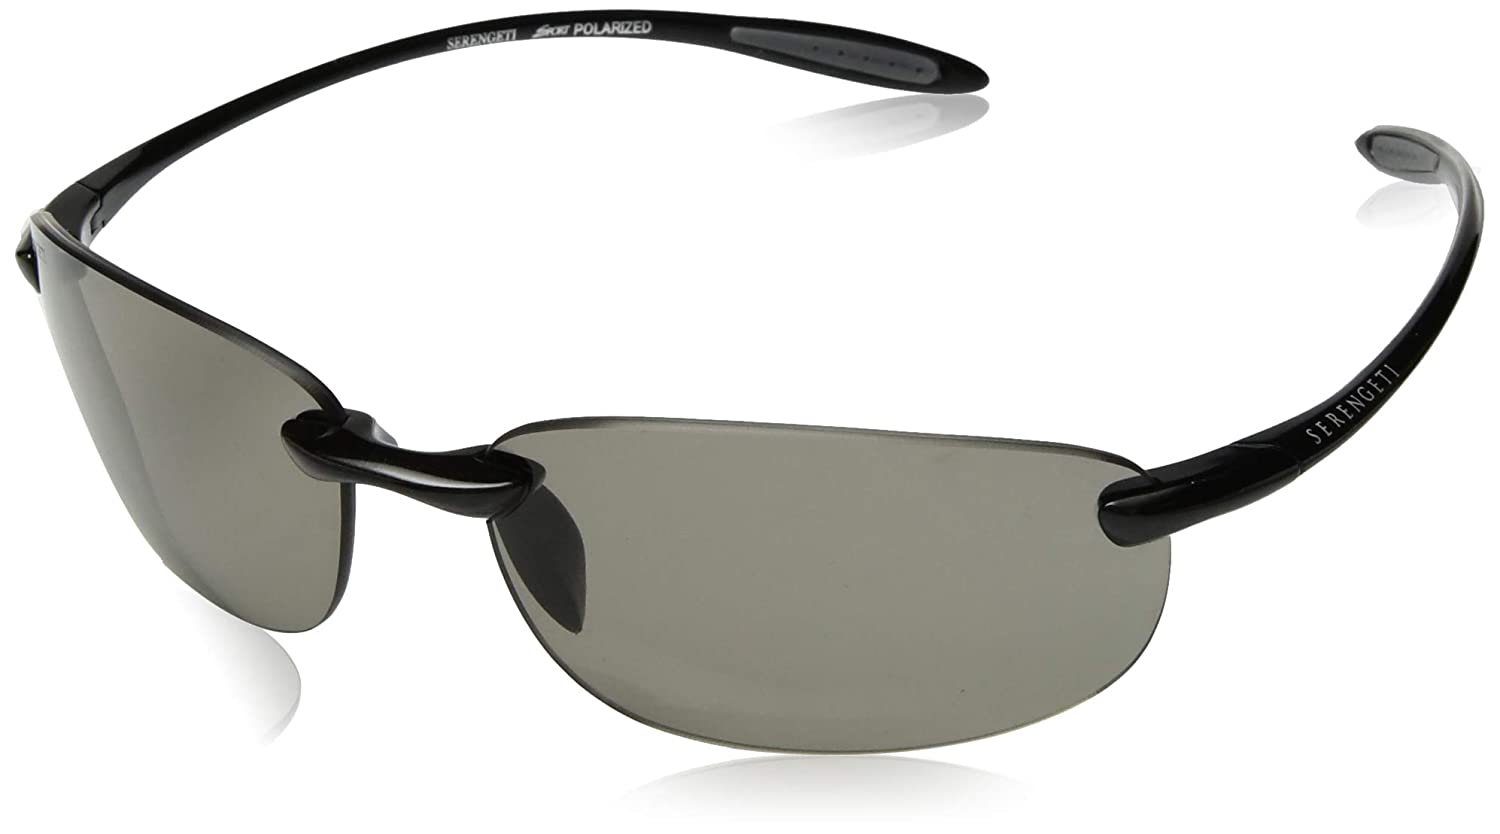 3bb40da2da Amazon.com  Serengeti Nuvino Polar Sunglasses